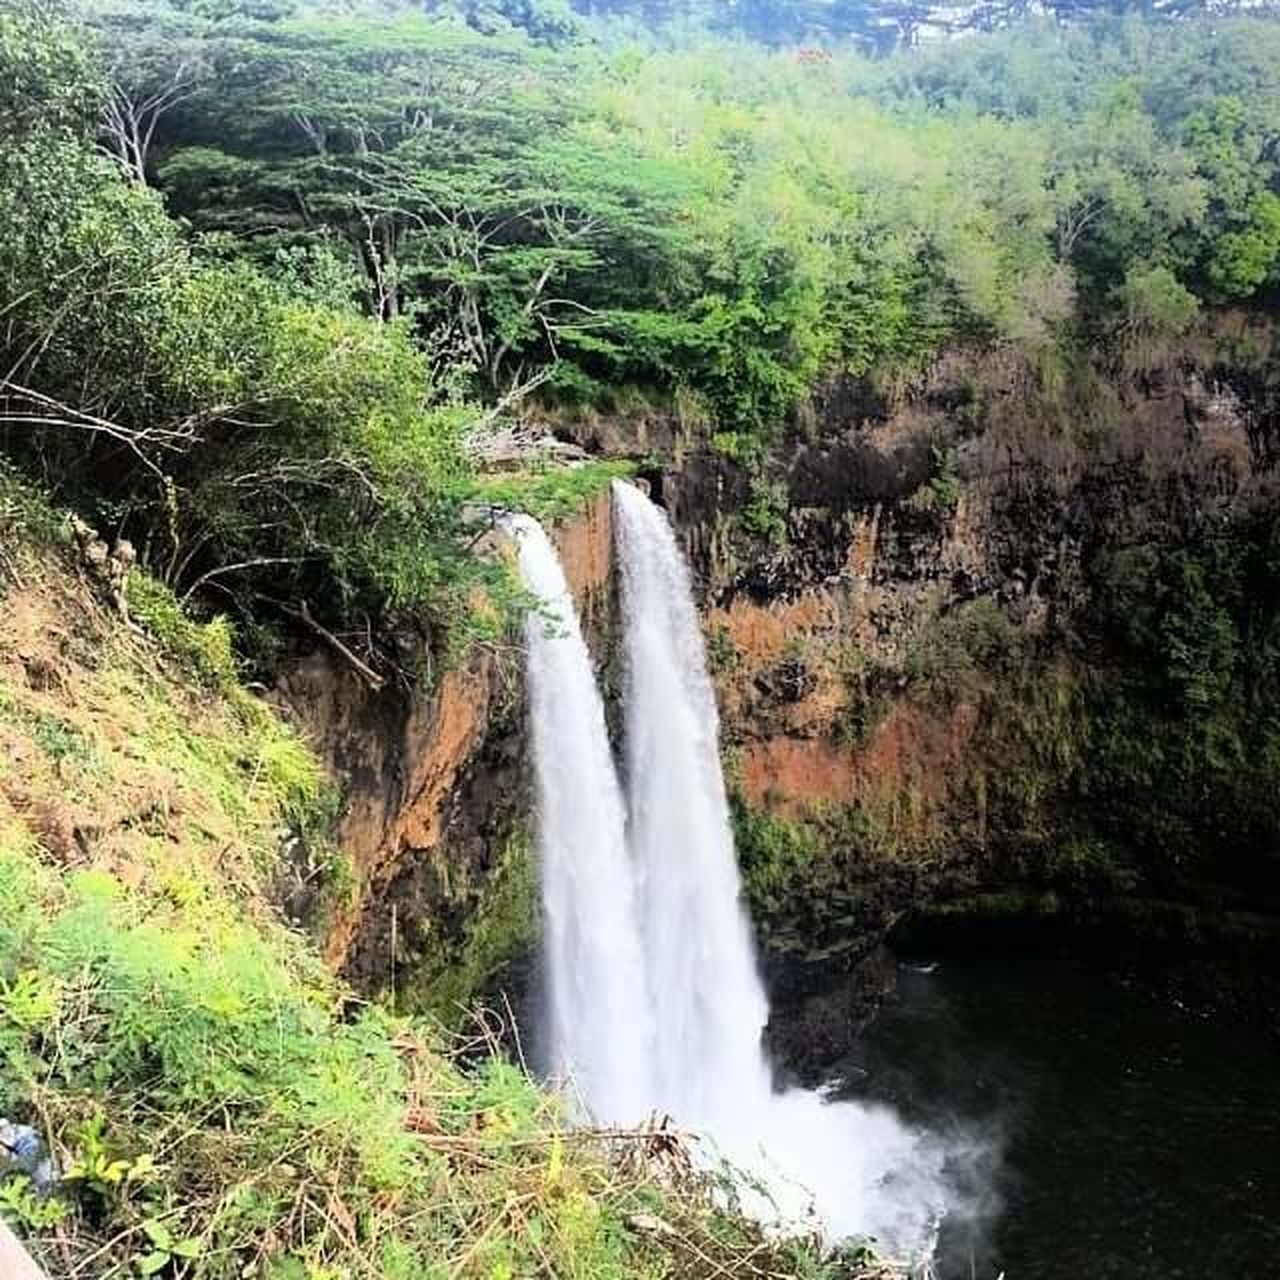 Waterfall Water Nature Flowing Flowing Water Beauty In Nature Motion Scenics Splashing Outdoors Vacations Day No People Freshness Kauai Hawaii Tranquility Tropical Climate Postcard Vacations Beauty In Nature